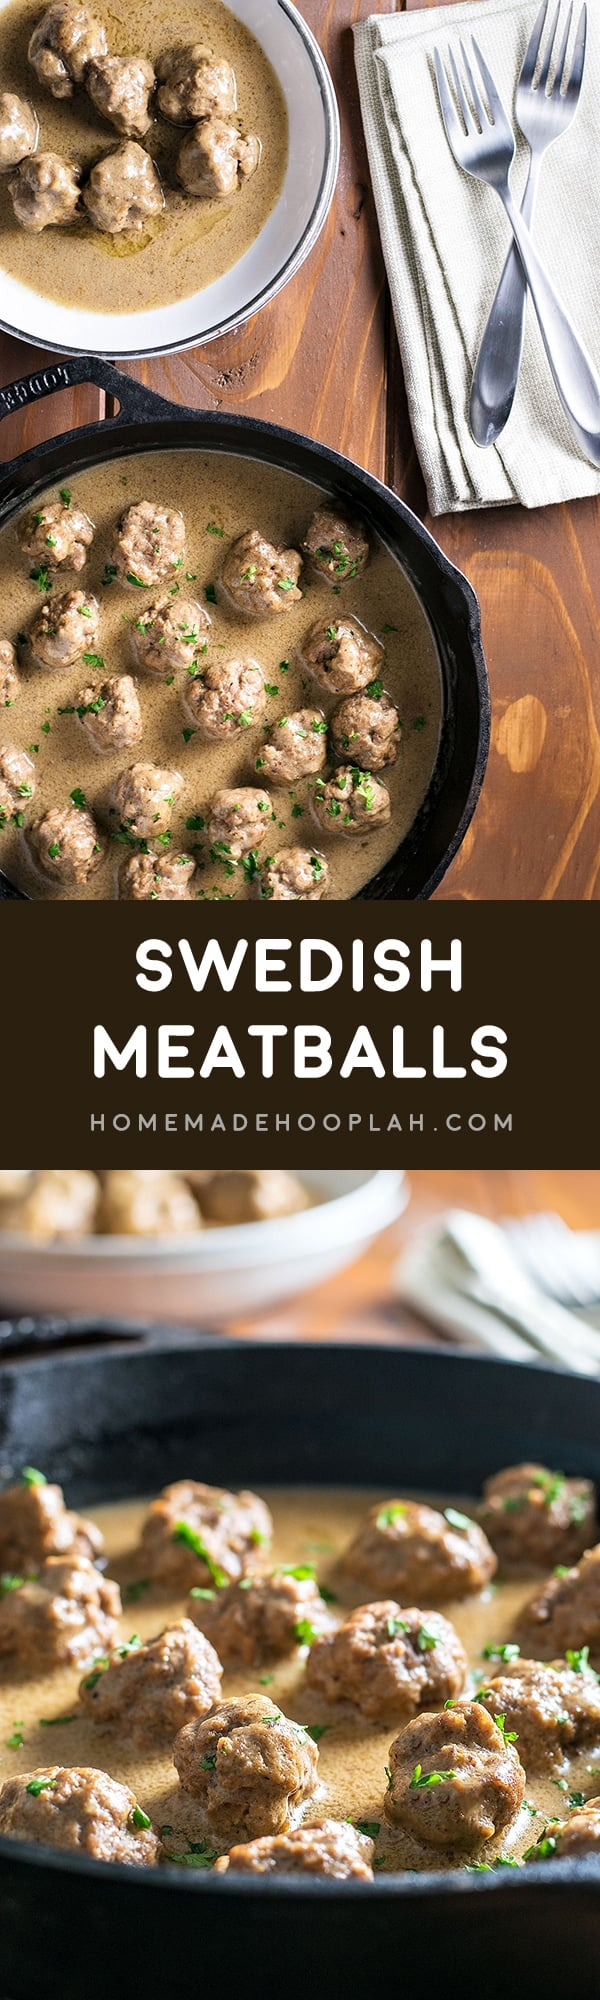 Swedish Meatballs! Pan fried meatballs cooked in a creamy and savory sauce. If you like IKEA's Swedish meatballs, now you can make them at home! | HomemadeHooplah.com